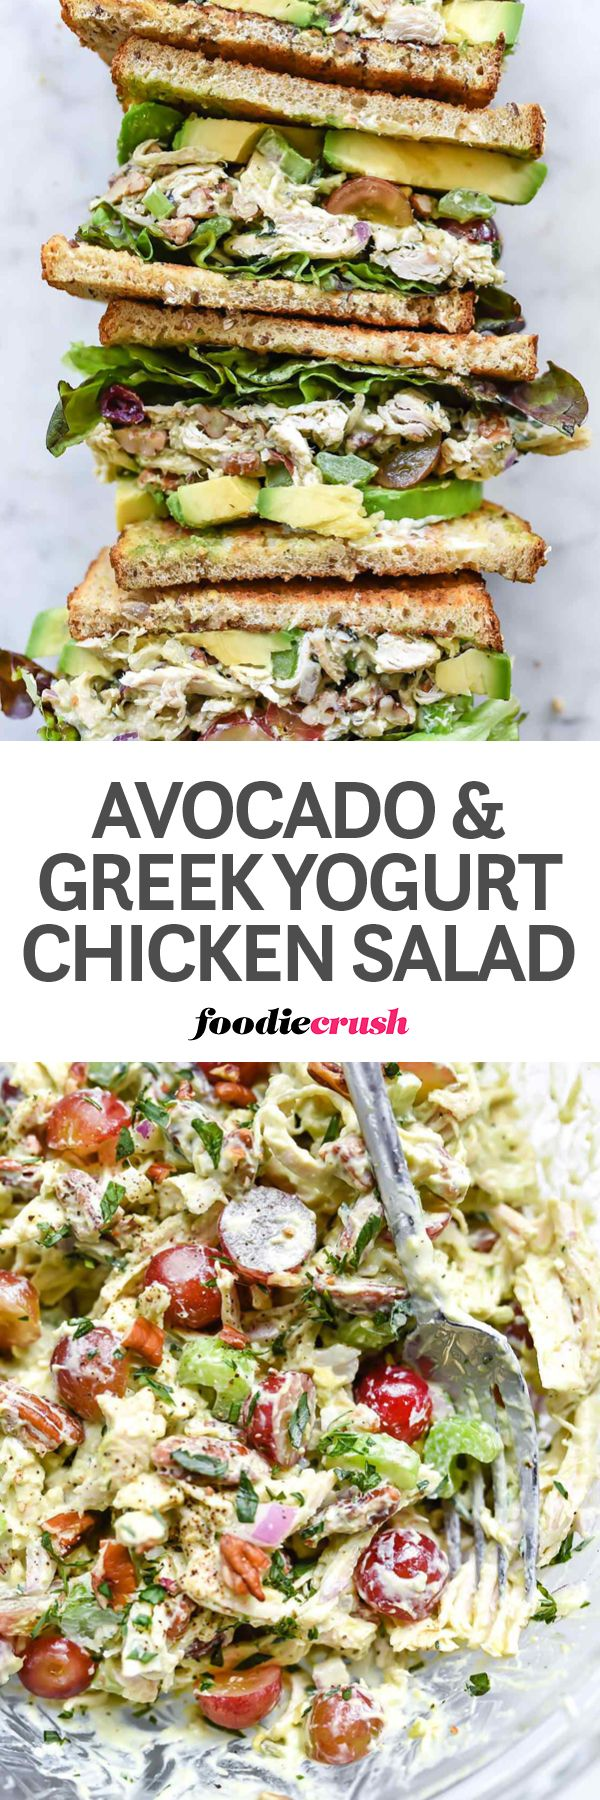 This traditional chicken salad recipe is lightened up with Greek nonfat yogurt and creamy mashed avocado for an added boost of protein plus good for you fats that make this salad so tasty no one will ever miss the mayo. | foodiecrush.com | chicken salad recipe | greek yogurt | avocado sauce